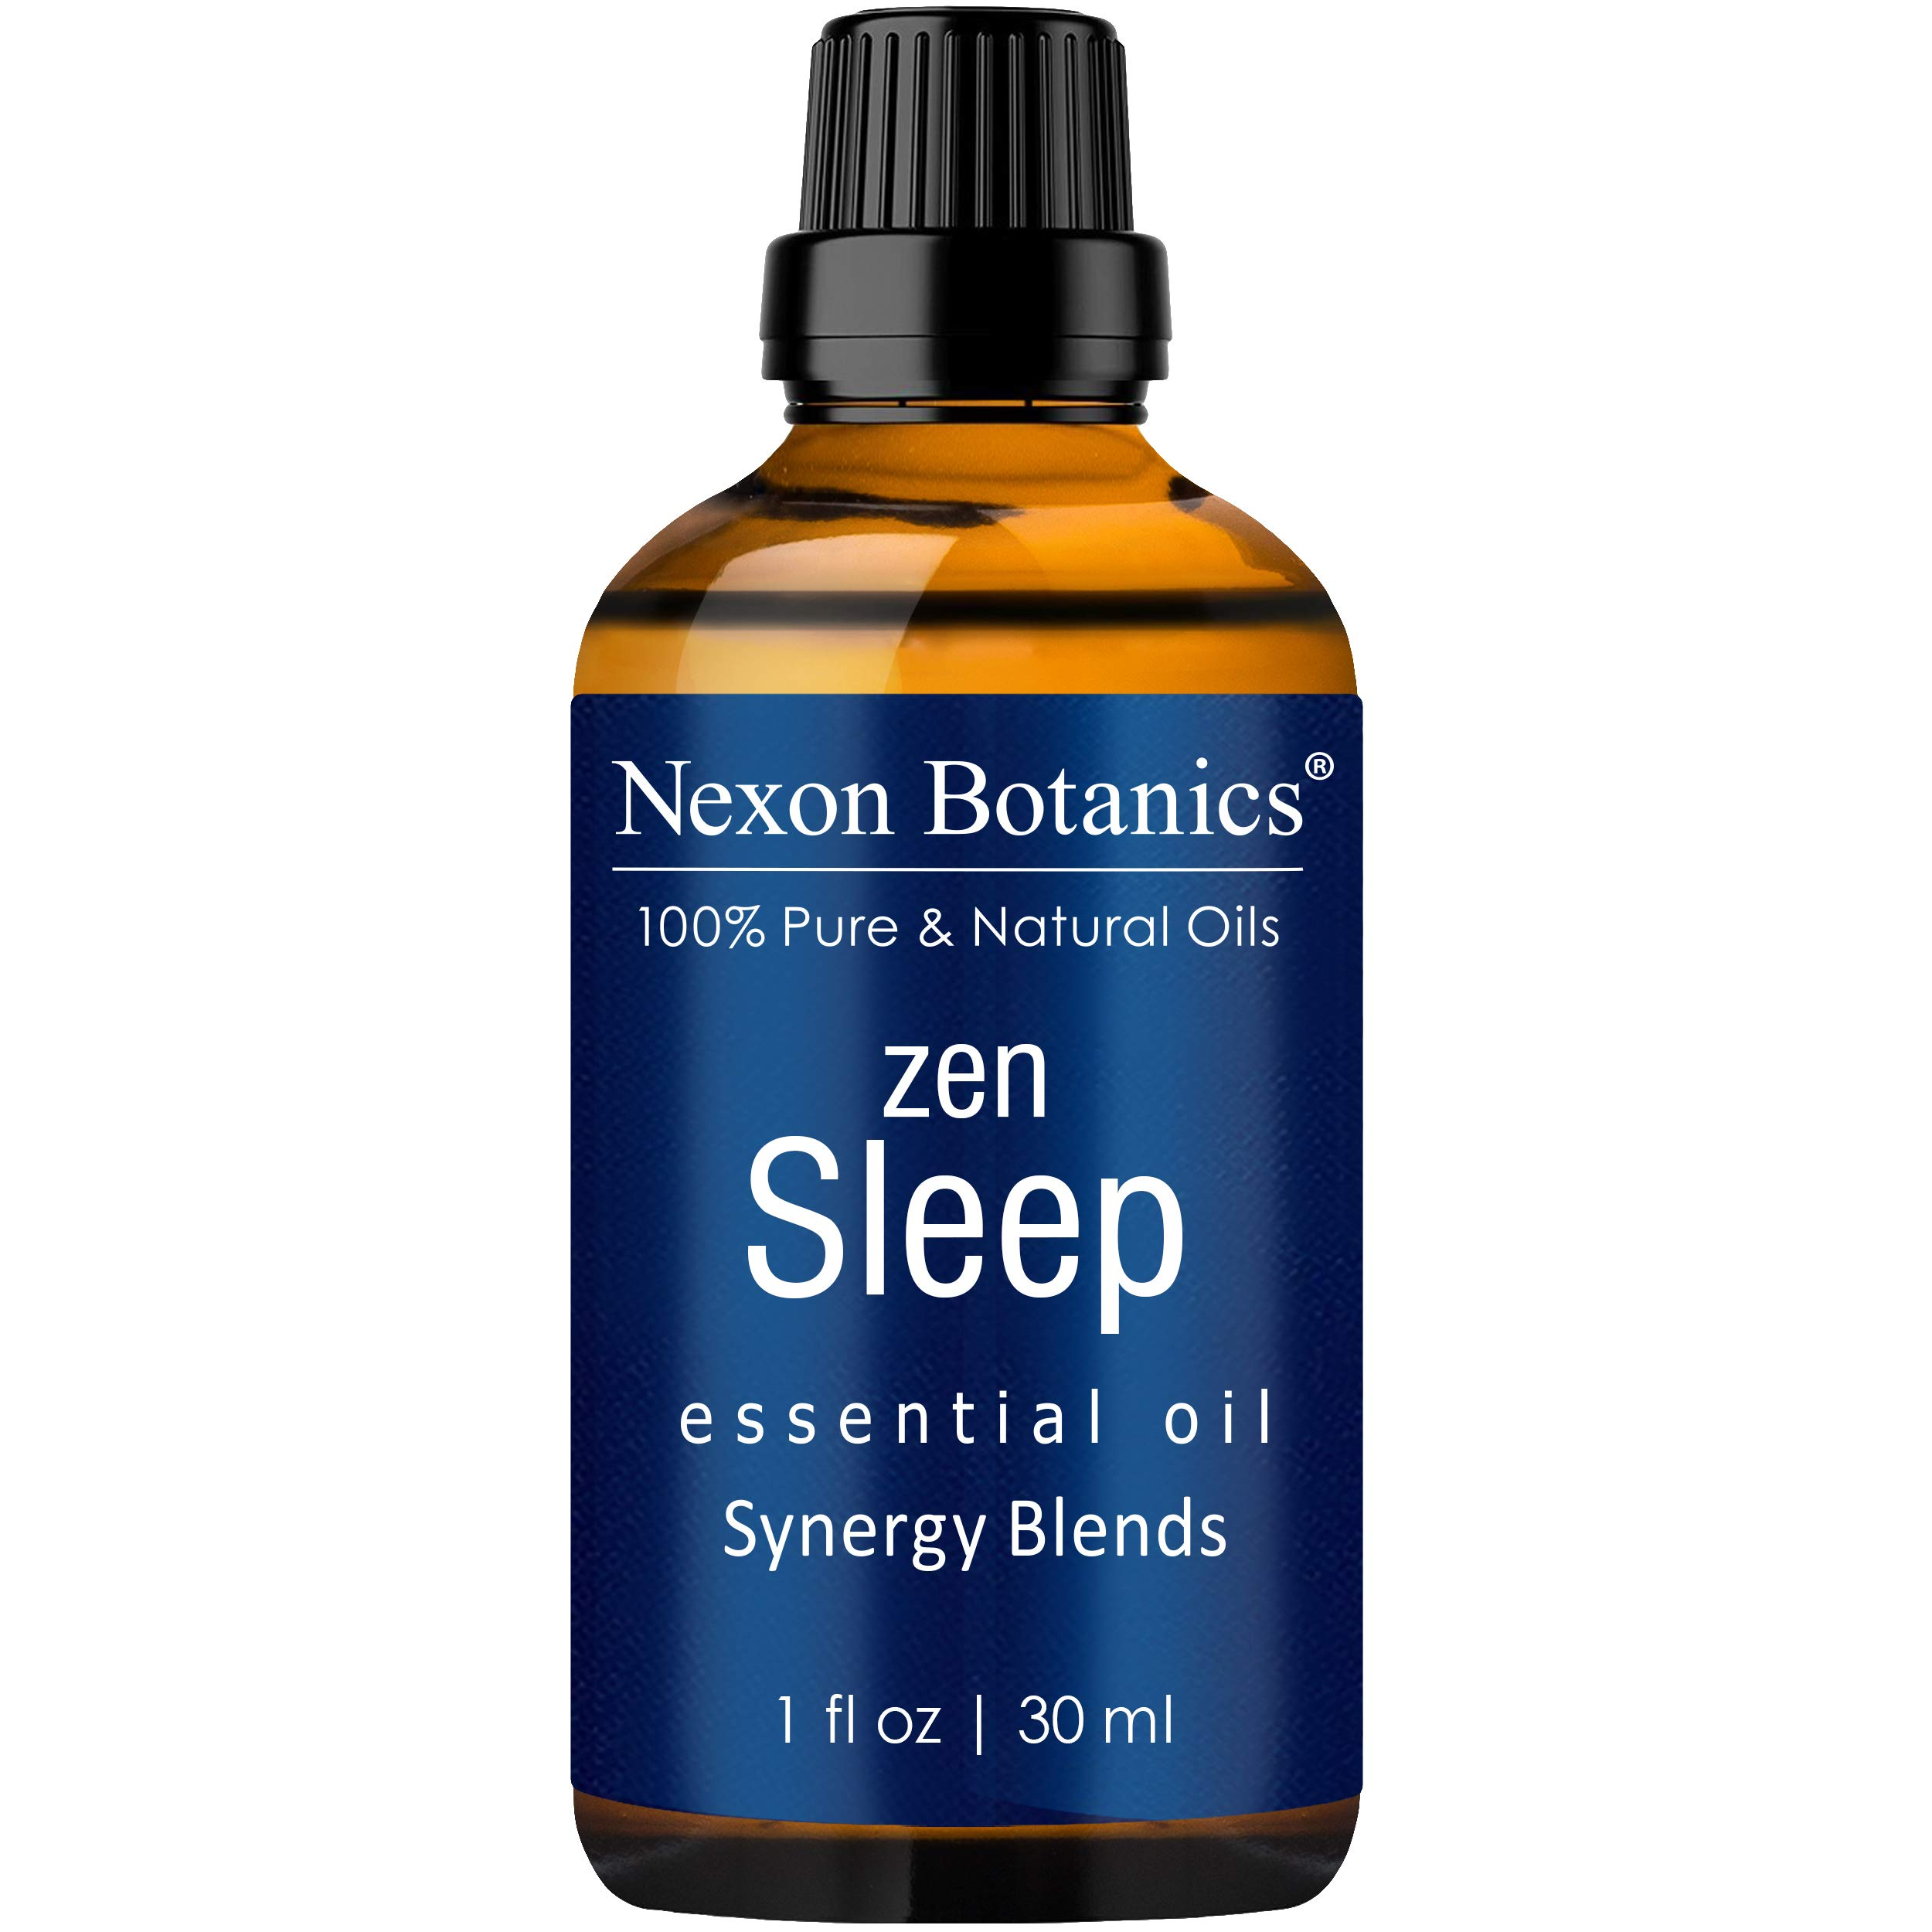 Nexon Botanics Zen Sleep Essential Oil 30 ml - Relaxing, Calming Sleeping Essential Oils for Sleep - Good Sleep Essential Oil for Diffuser and Aromatherapy - Promotes Sweet Dreams by Nexon Botanics